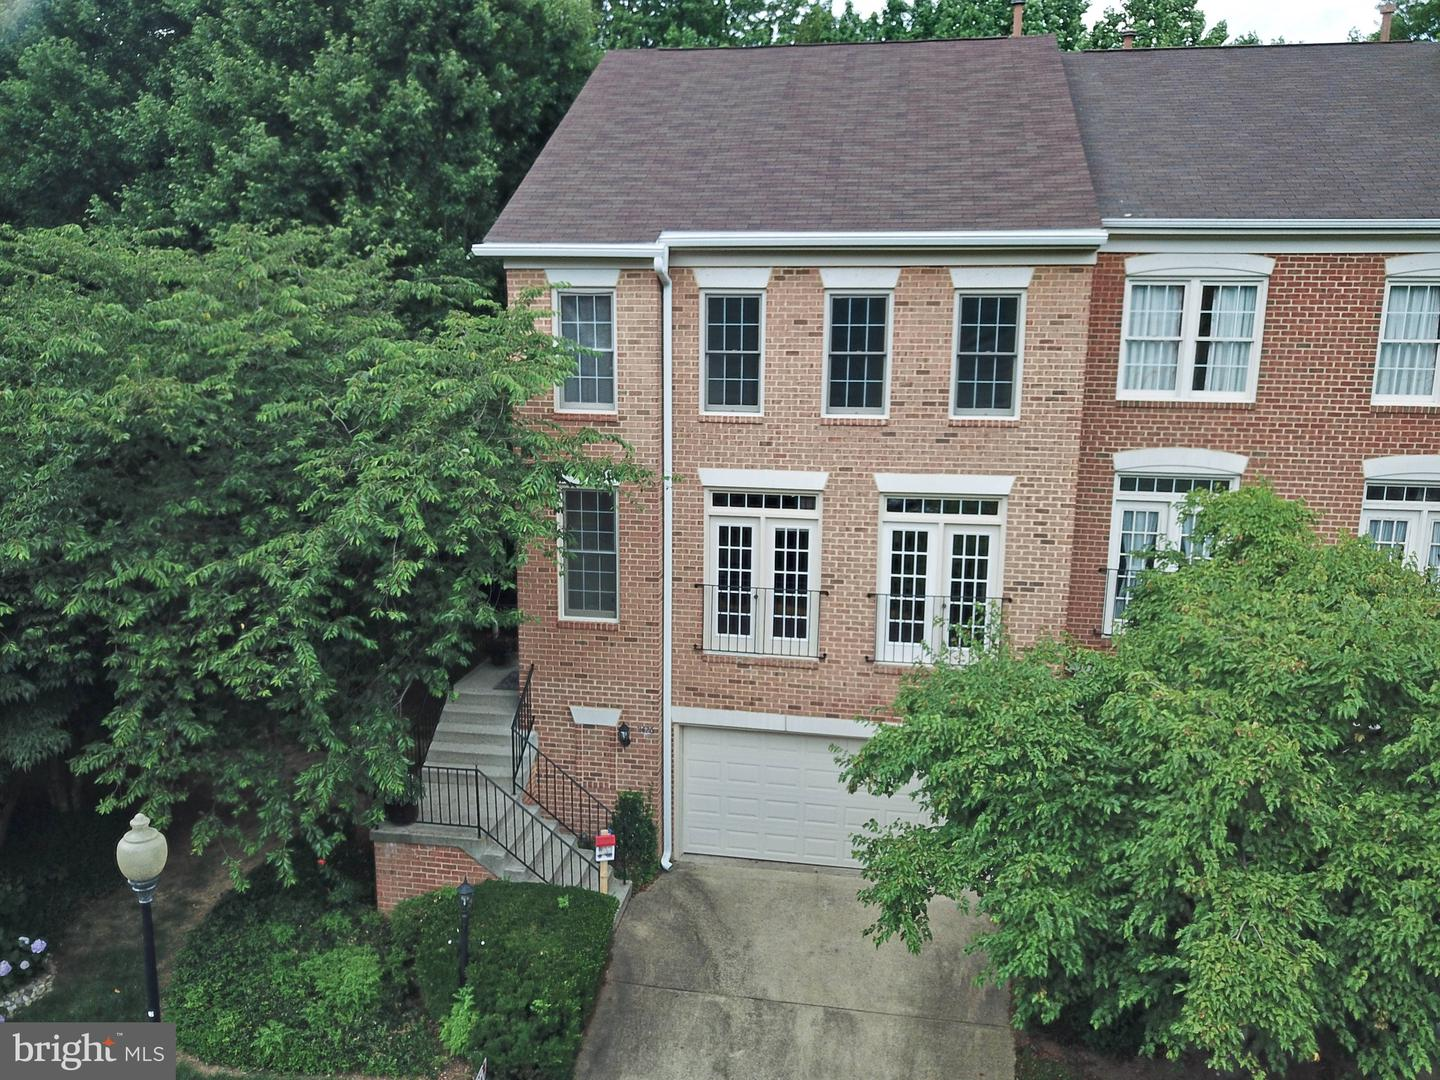 11426 Summer House Reston, VA